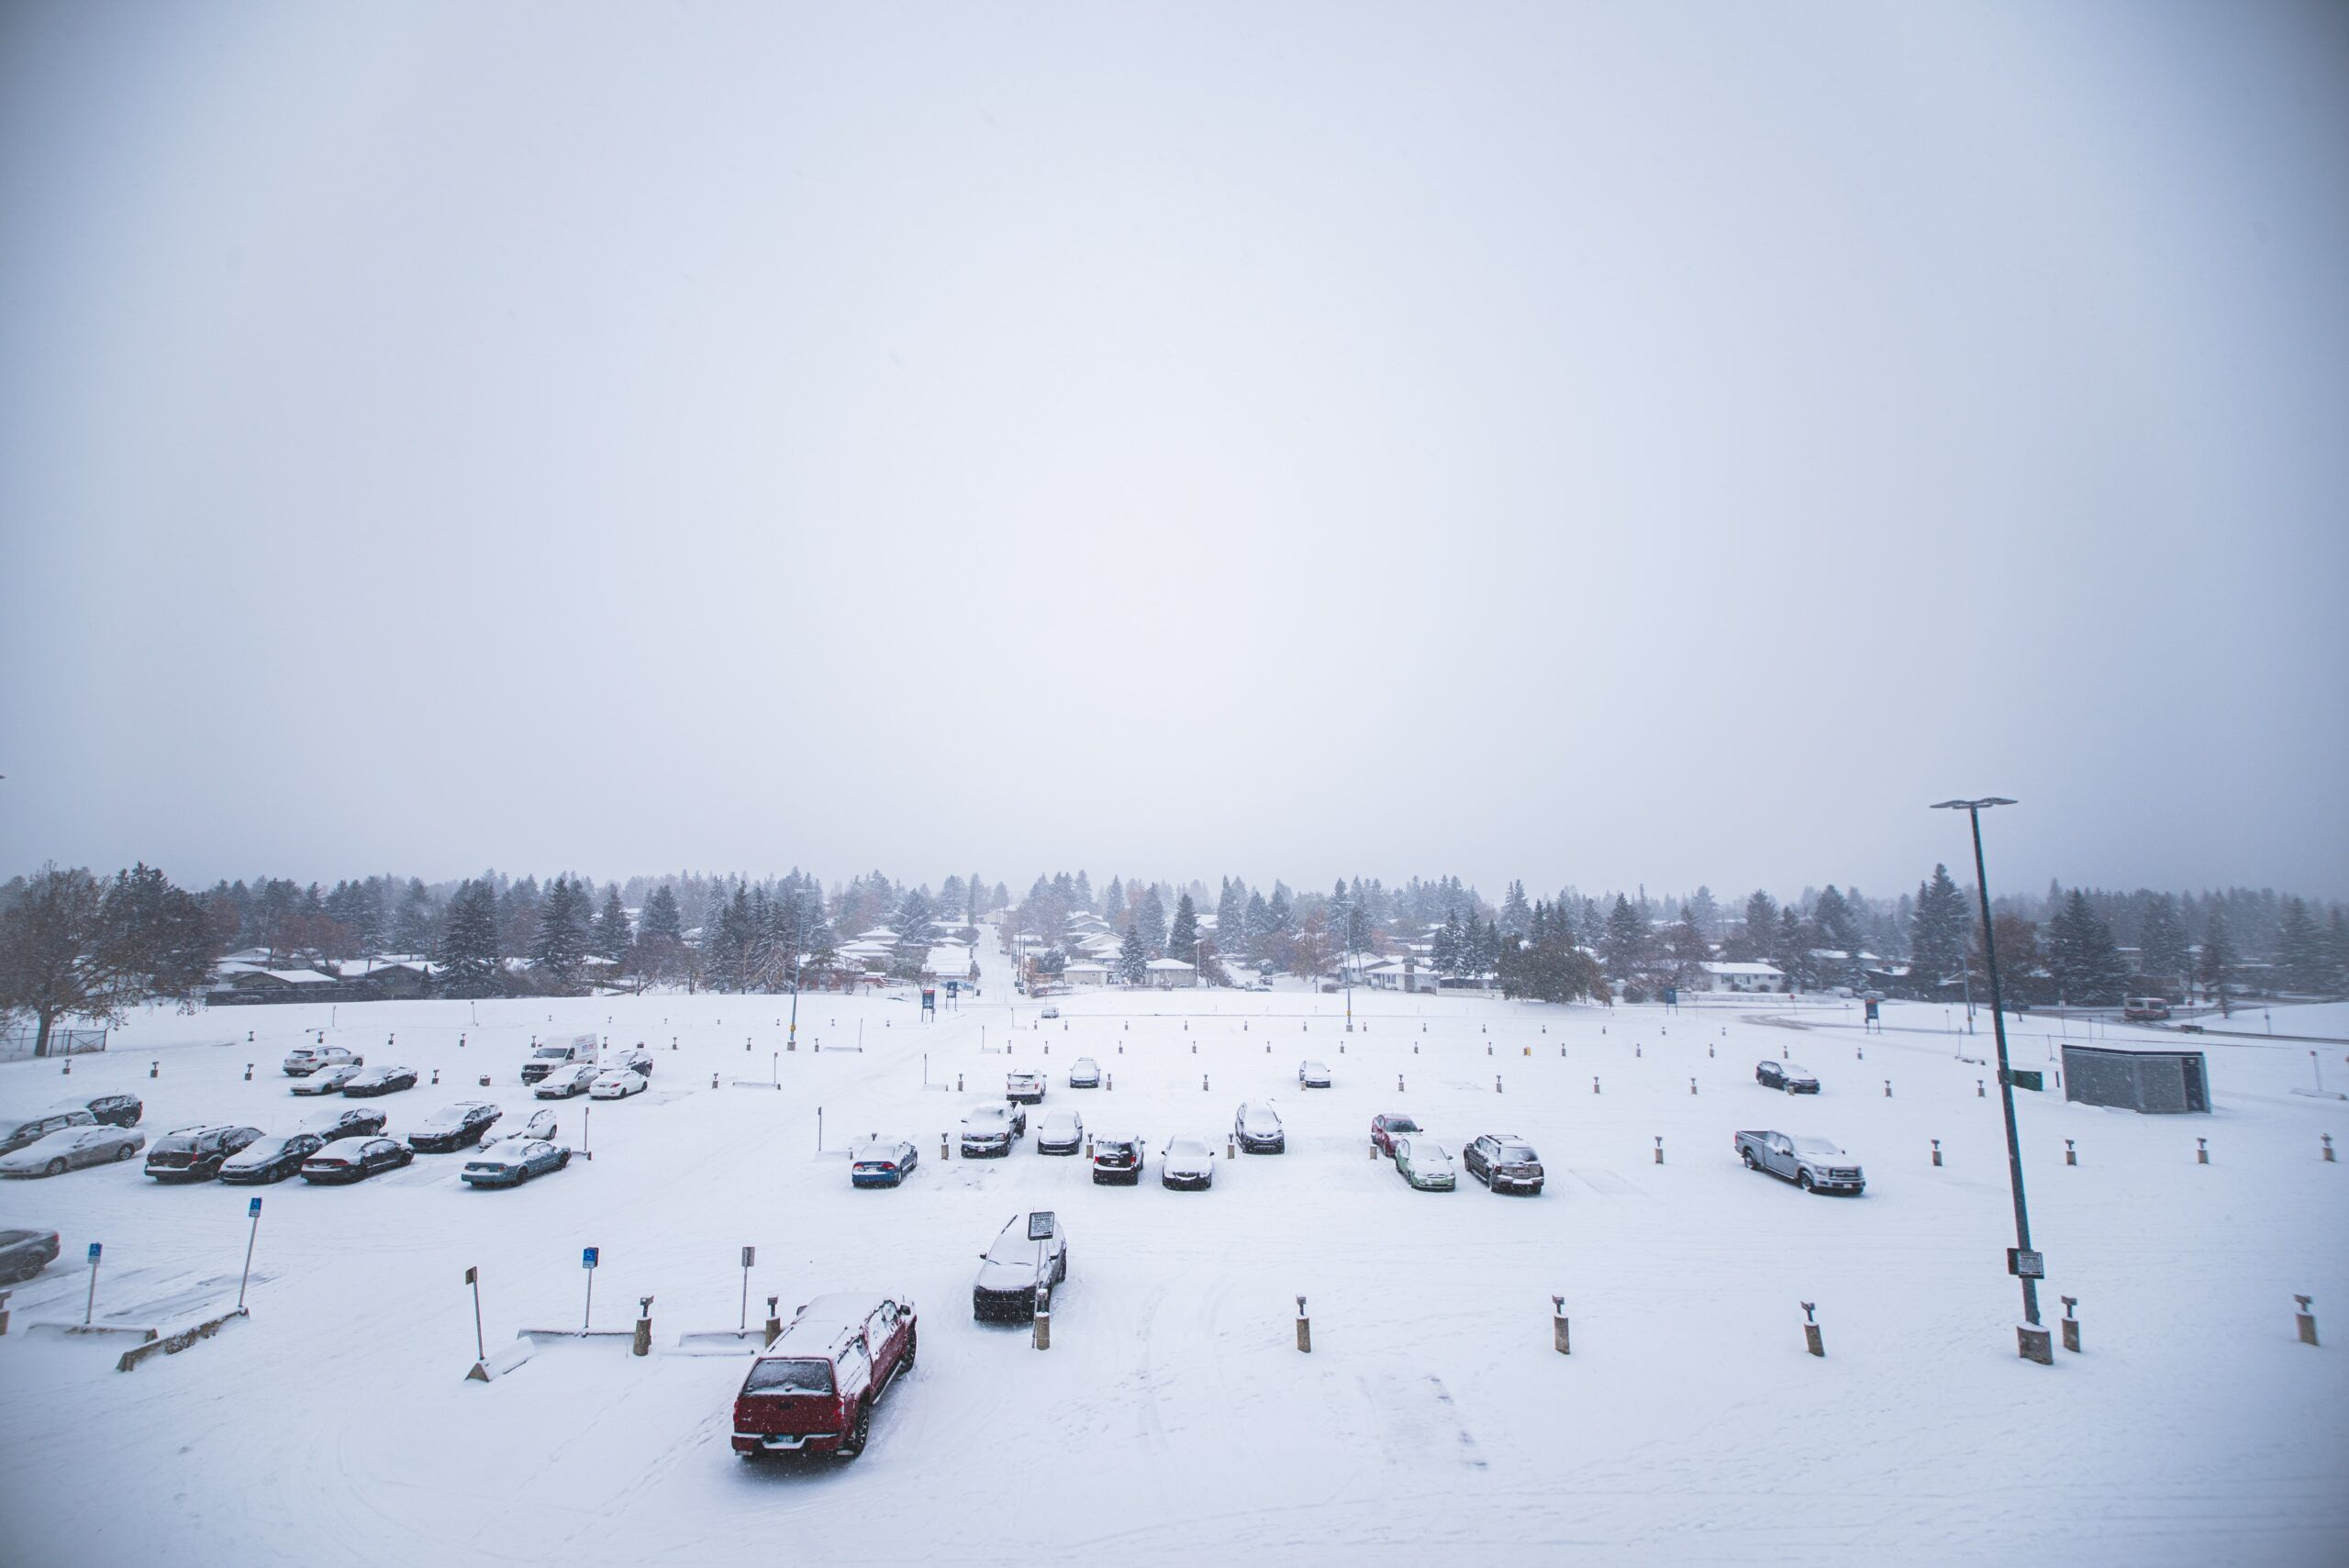 parking lot covered in snow